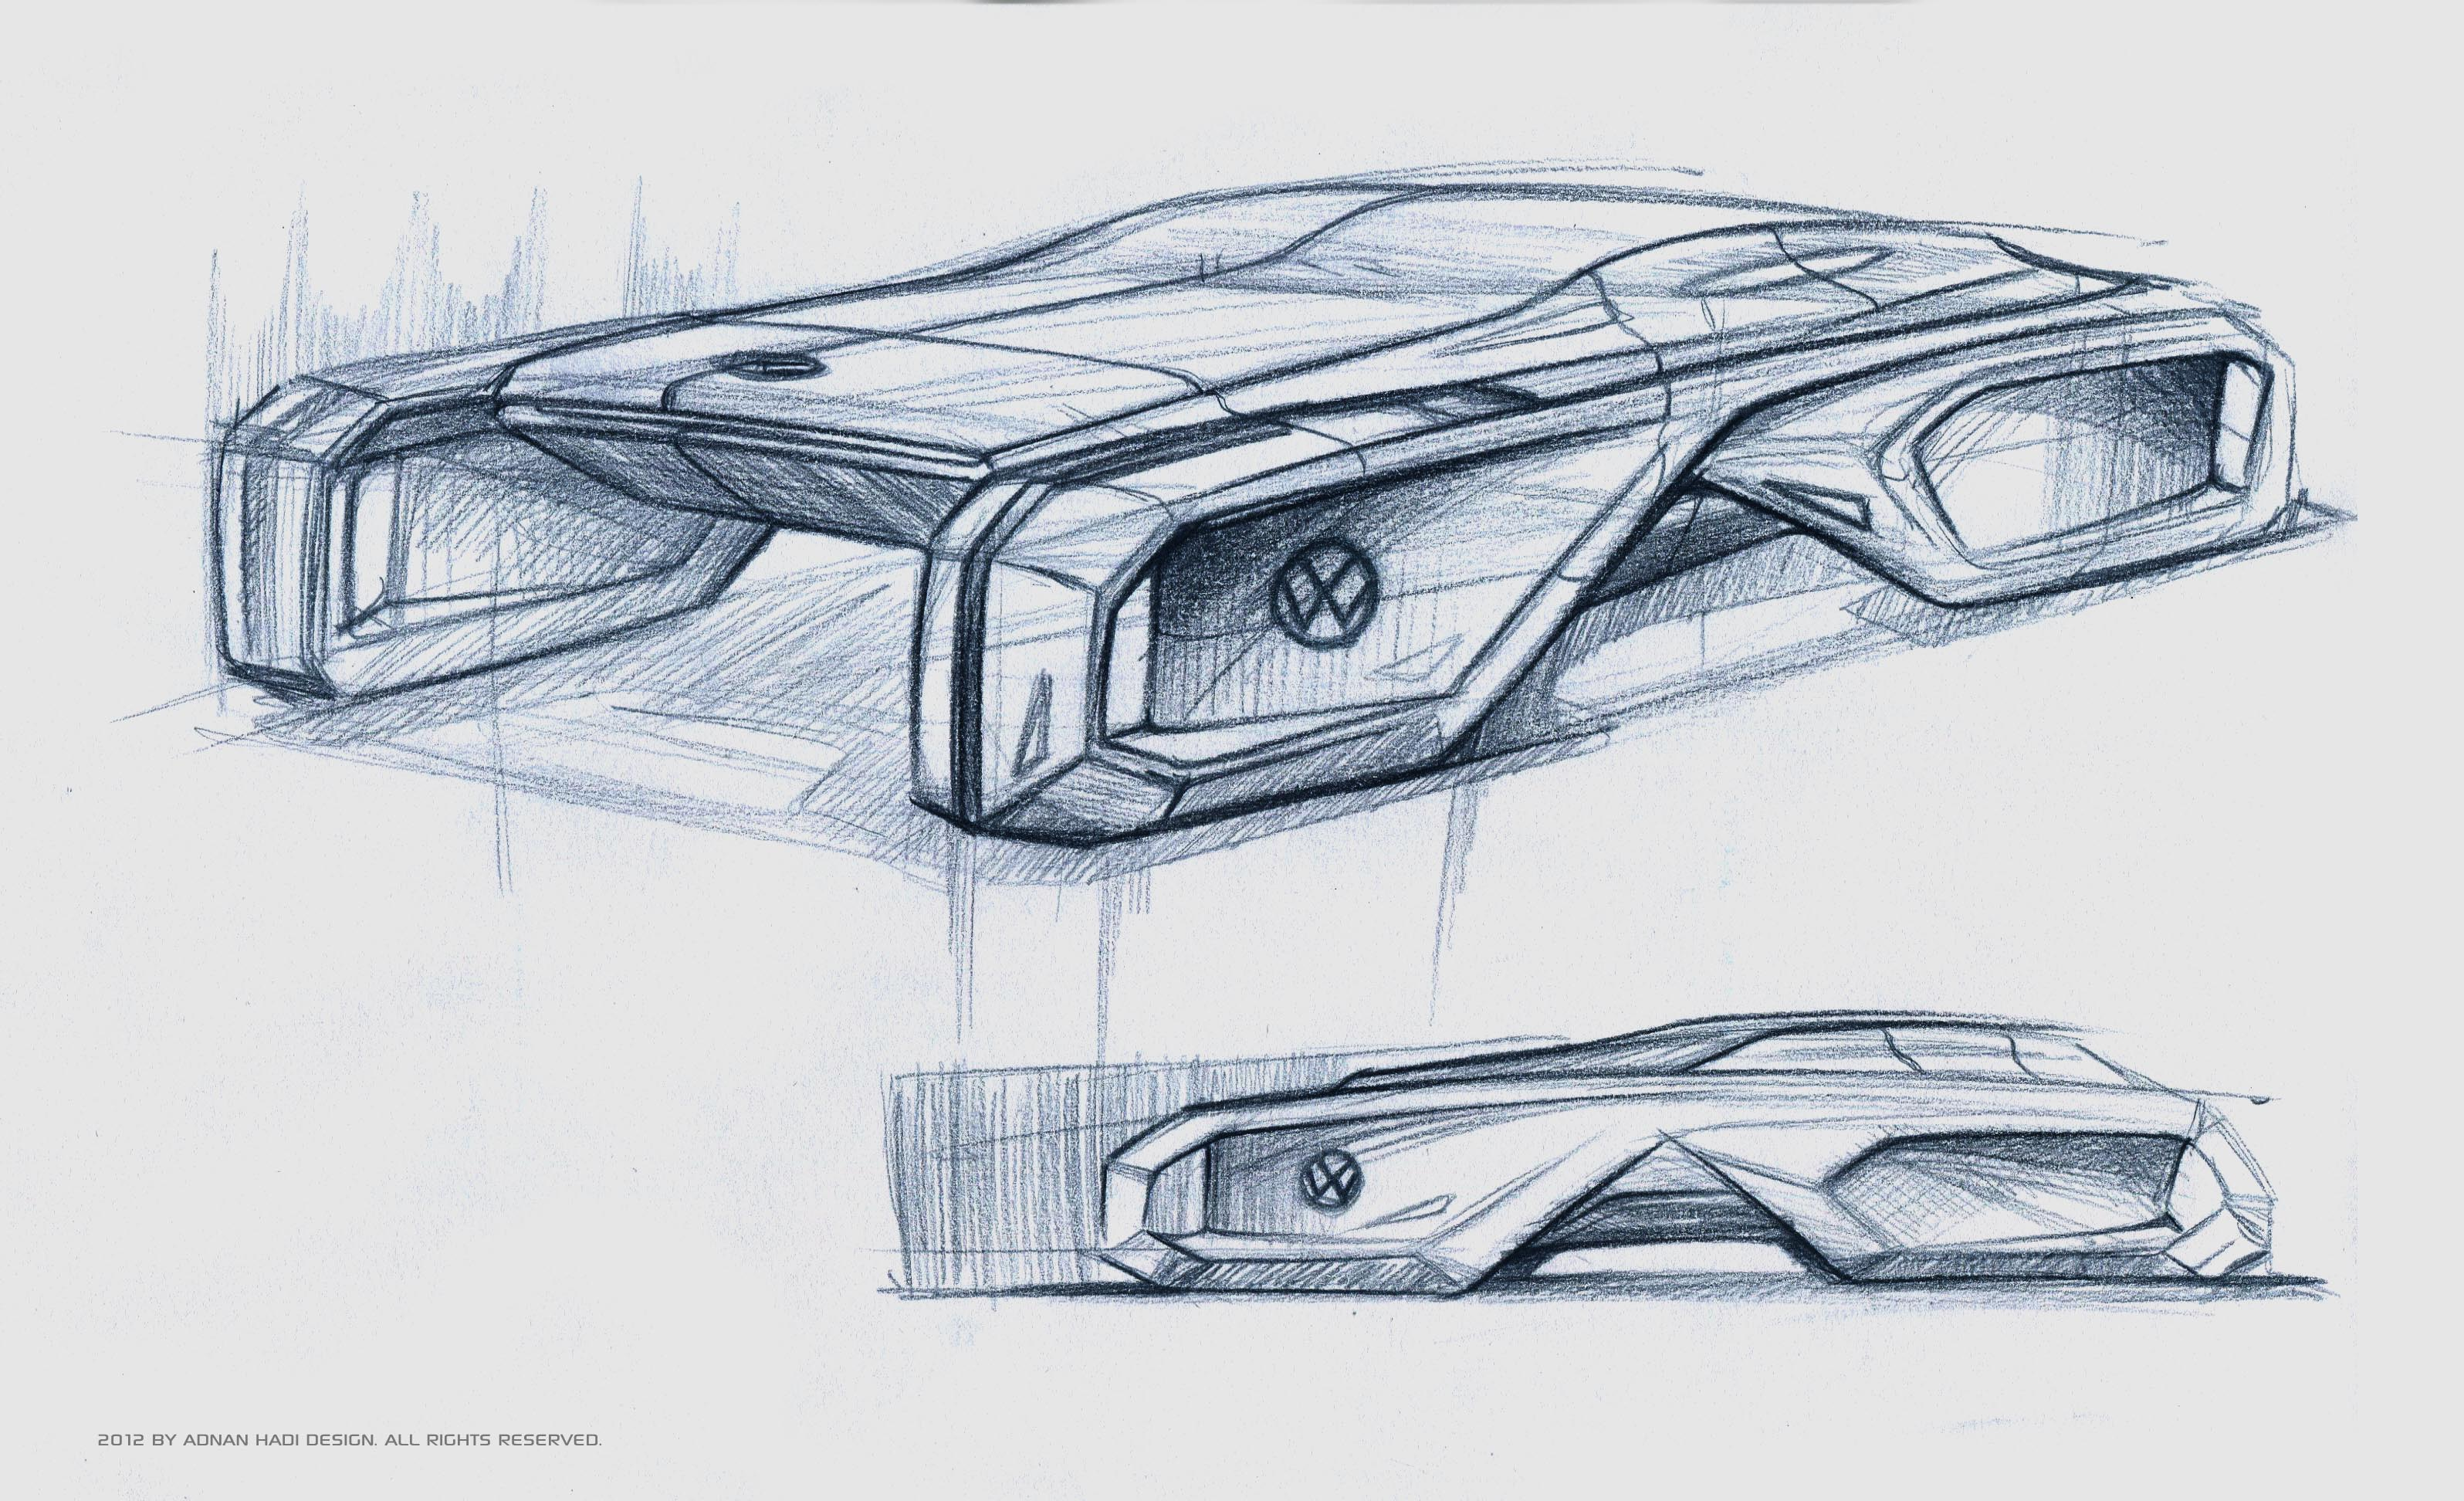 Futuristic Cars Drawing at GetDrawings.com | Free for personal use ...